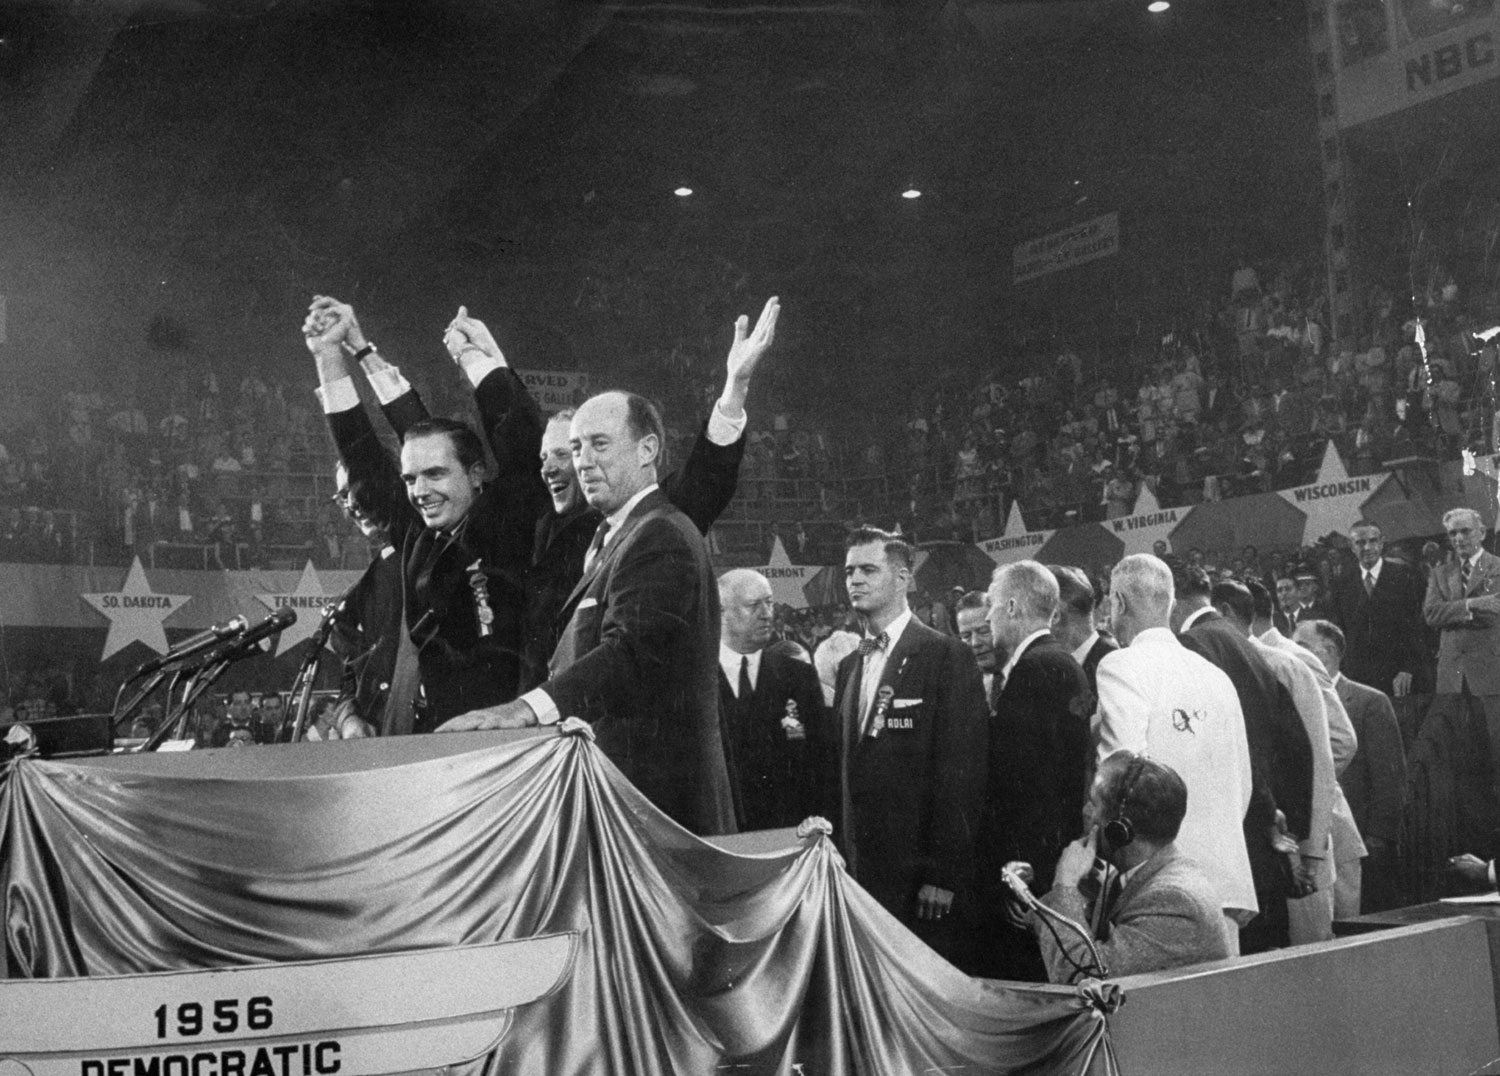 Left to right: Senator Estes Kefauver, Gov. Frank Clement, Sen. Albert Gore and candidate Adlai Stevenson at the 1956 Democratic National Convention in Chicago.